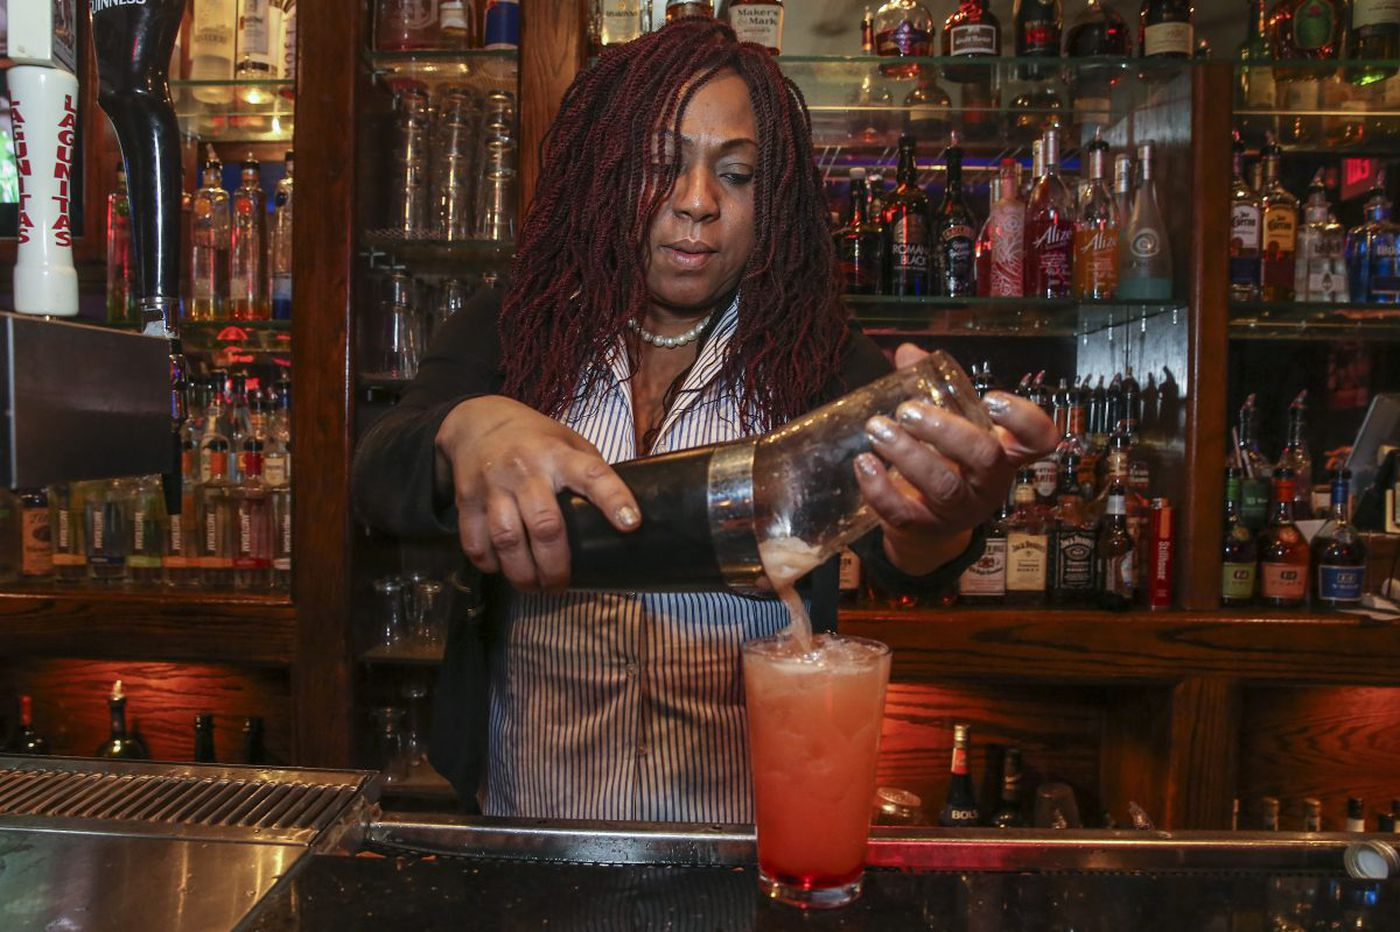 Feeling nostalgic? This Philly bar has a drink called 'The Obama'